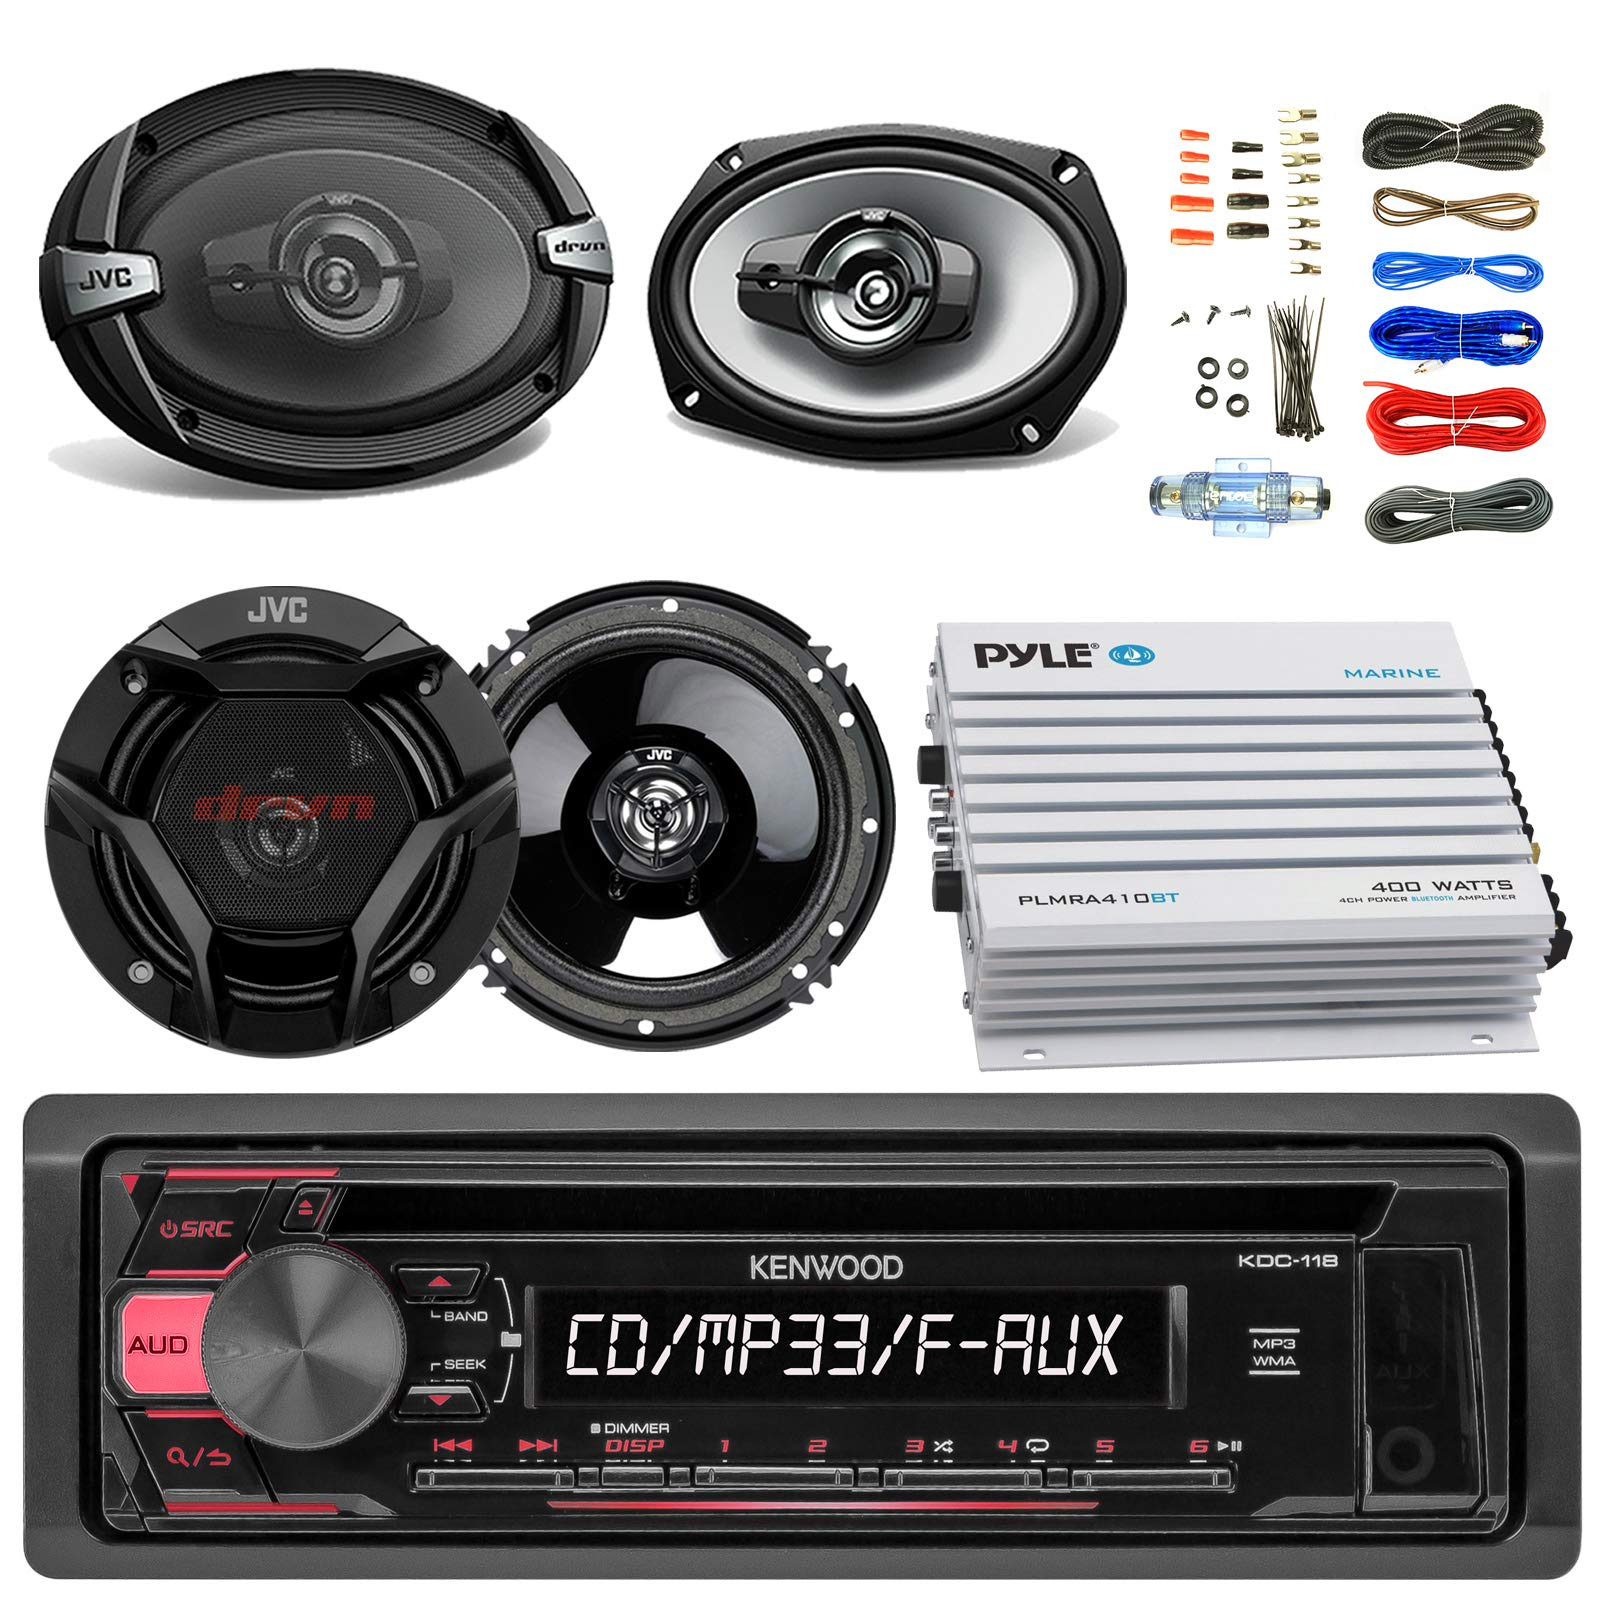 Kenwood KDC118 Car CD Player Receiver AUX Radio - Bundle Combo With 2x JVC 6x9'' 3-Way Vehicle Coaxial Speakers + 2x 6.5'' Inch 2-Way Audio Speakers + 4-Channel Amplifier + Amp Kit by EnrockAudioBundle (Image #1)